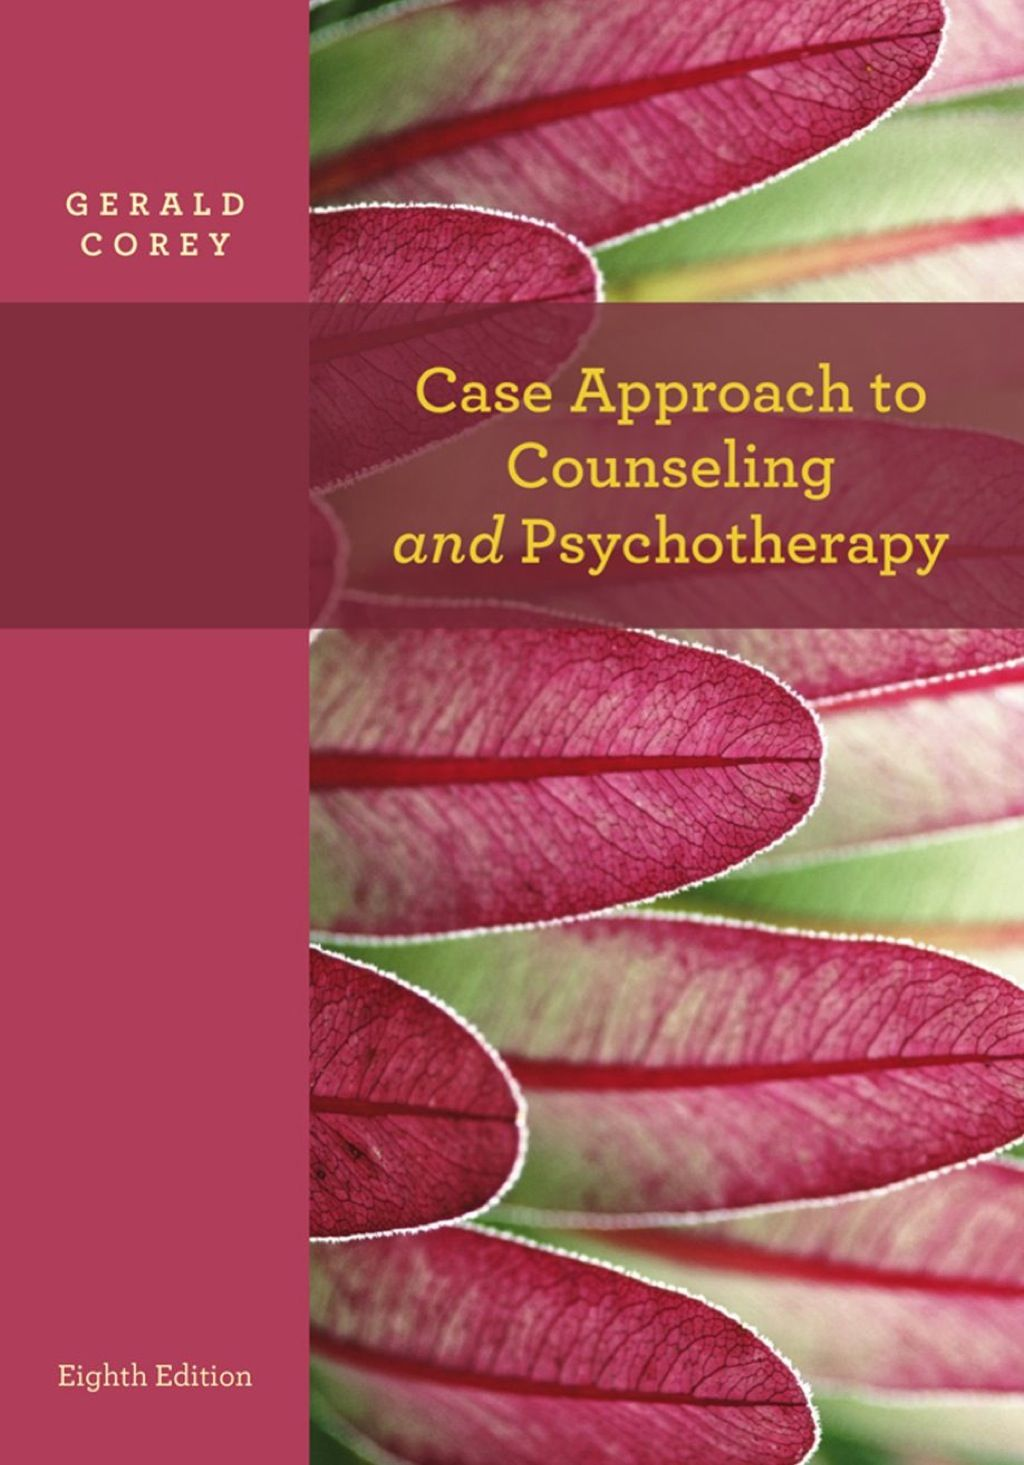 Case Approach To Counseling And Psychotherapy Ebook